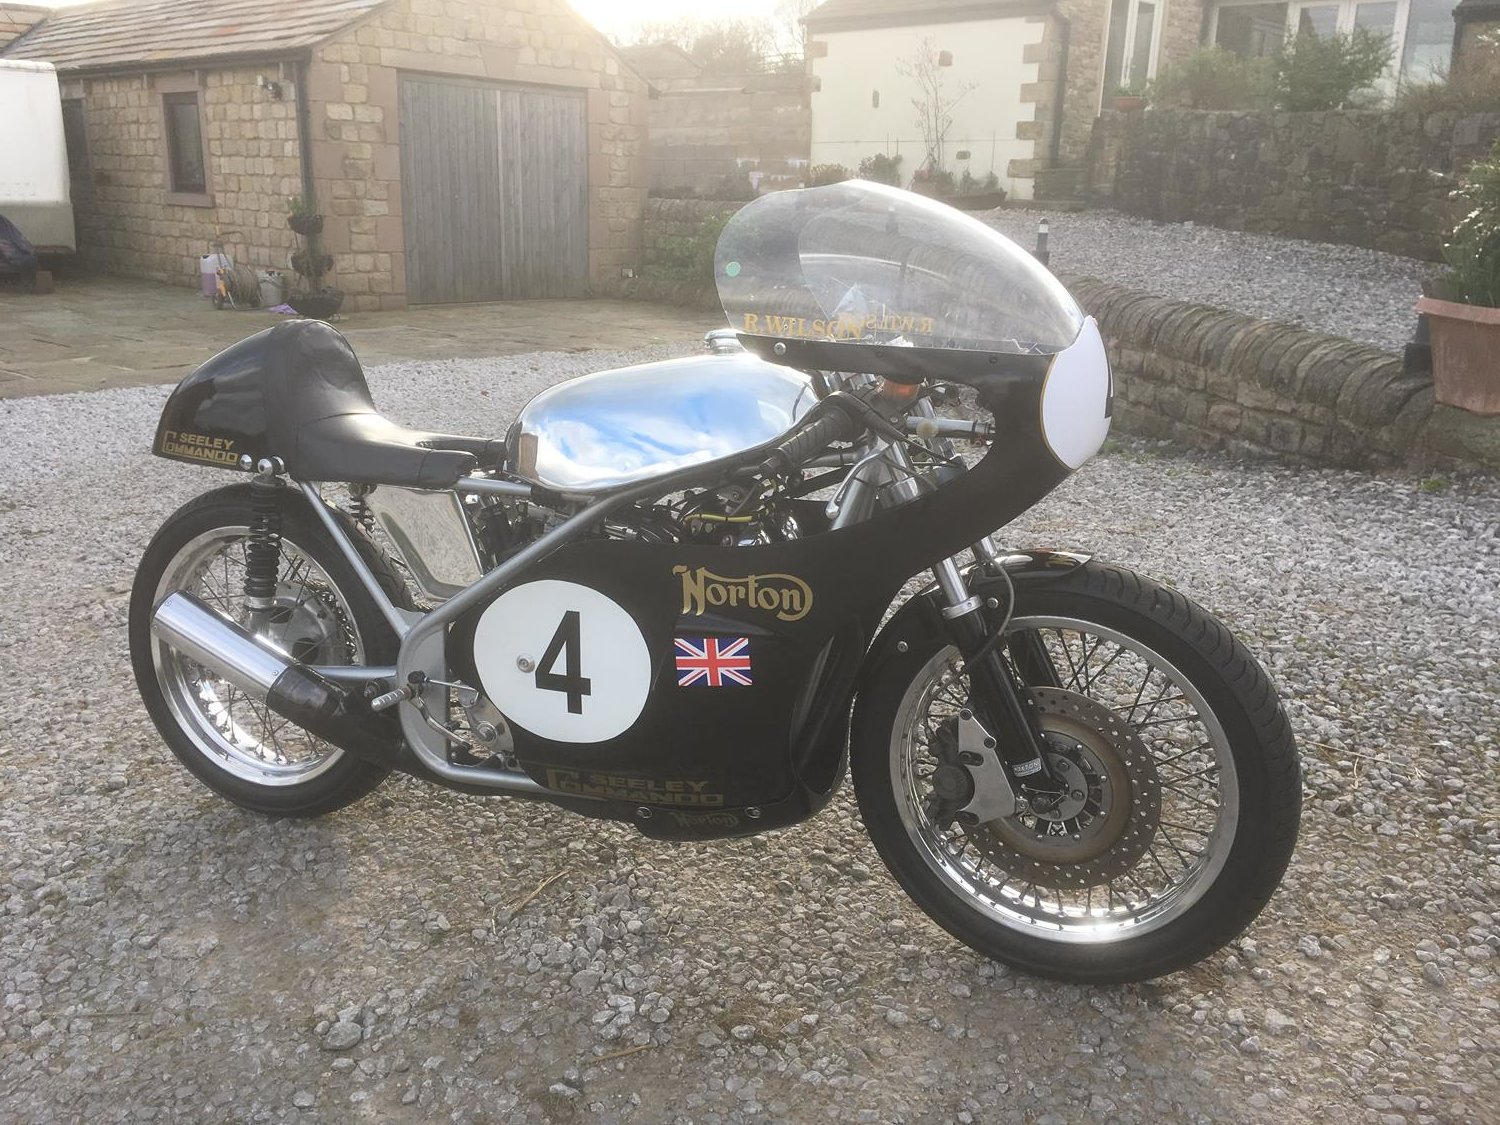 1972 Norton / Seeley 750 Commando Race Bike SOLD (picture 3 of 3)